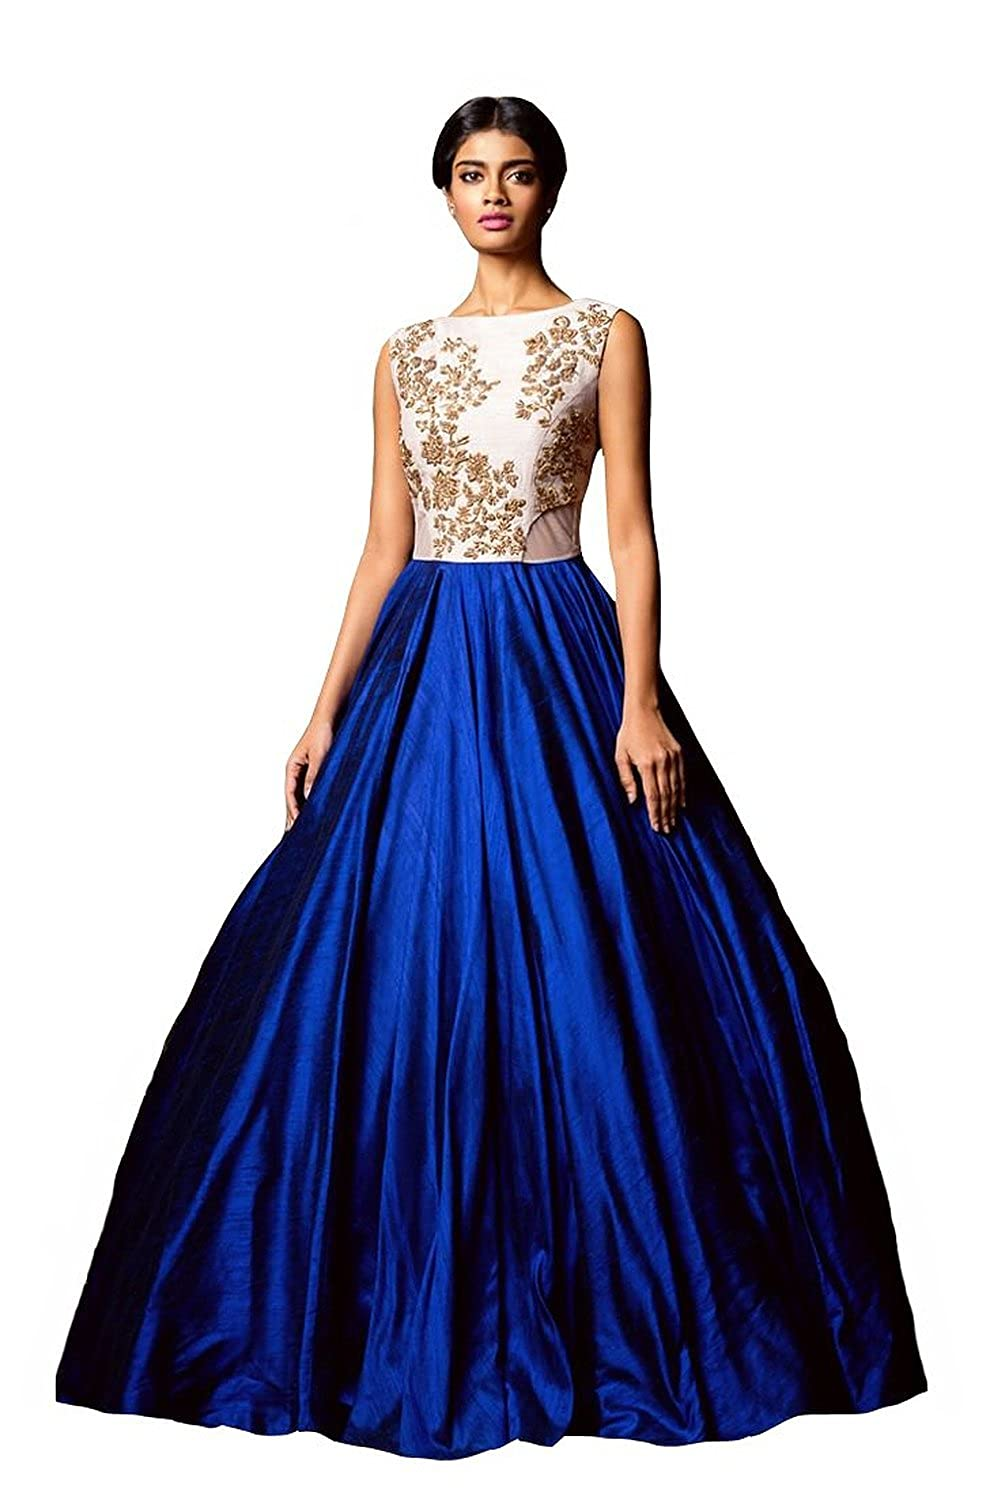 Deals on Clickedia Women's Stitched Gown